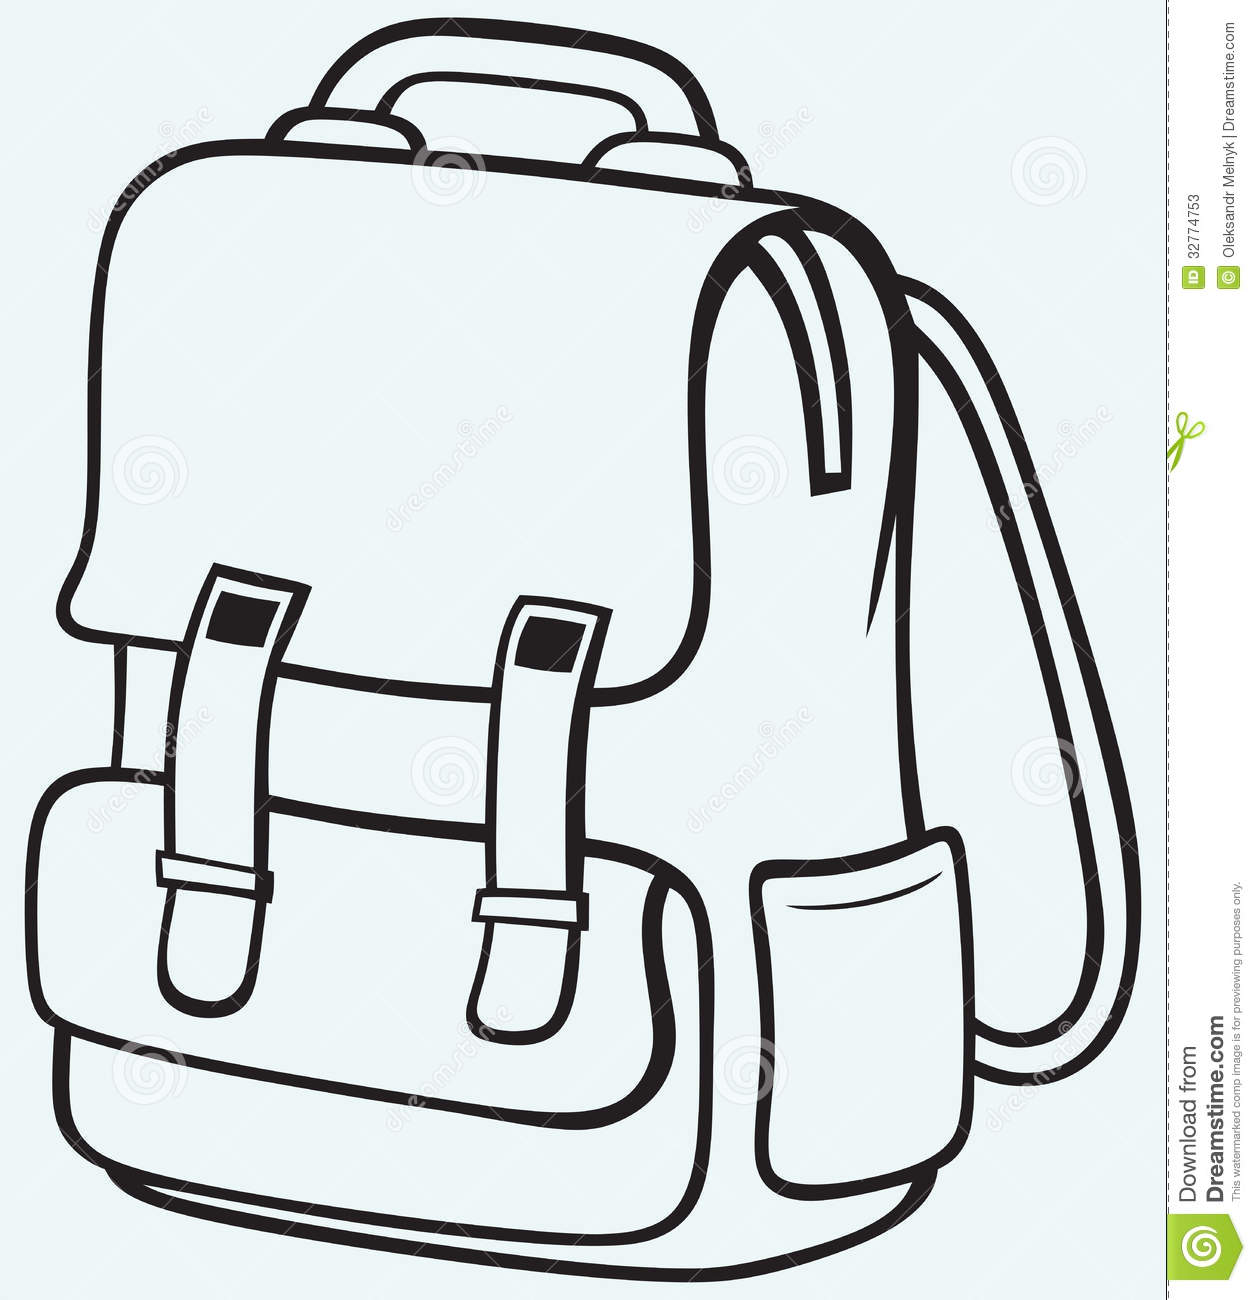 Bag images clipart graphic royalty free stock Kid With Backpack Clipart Black And White | Clipart Panda - Free ... graphic royalty free stock